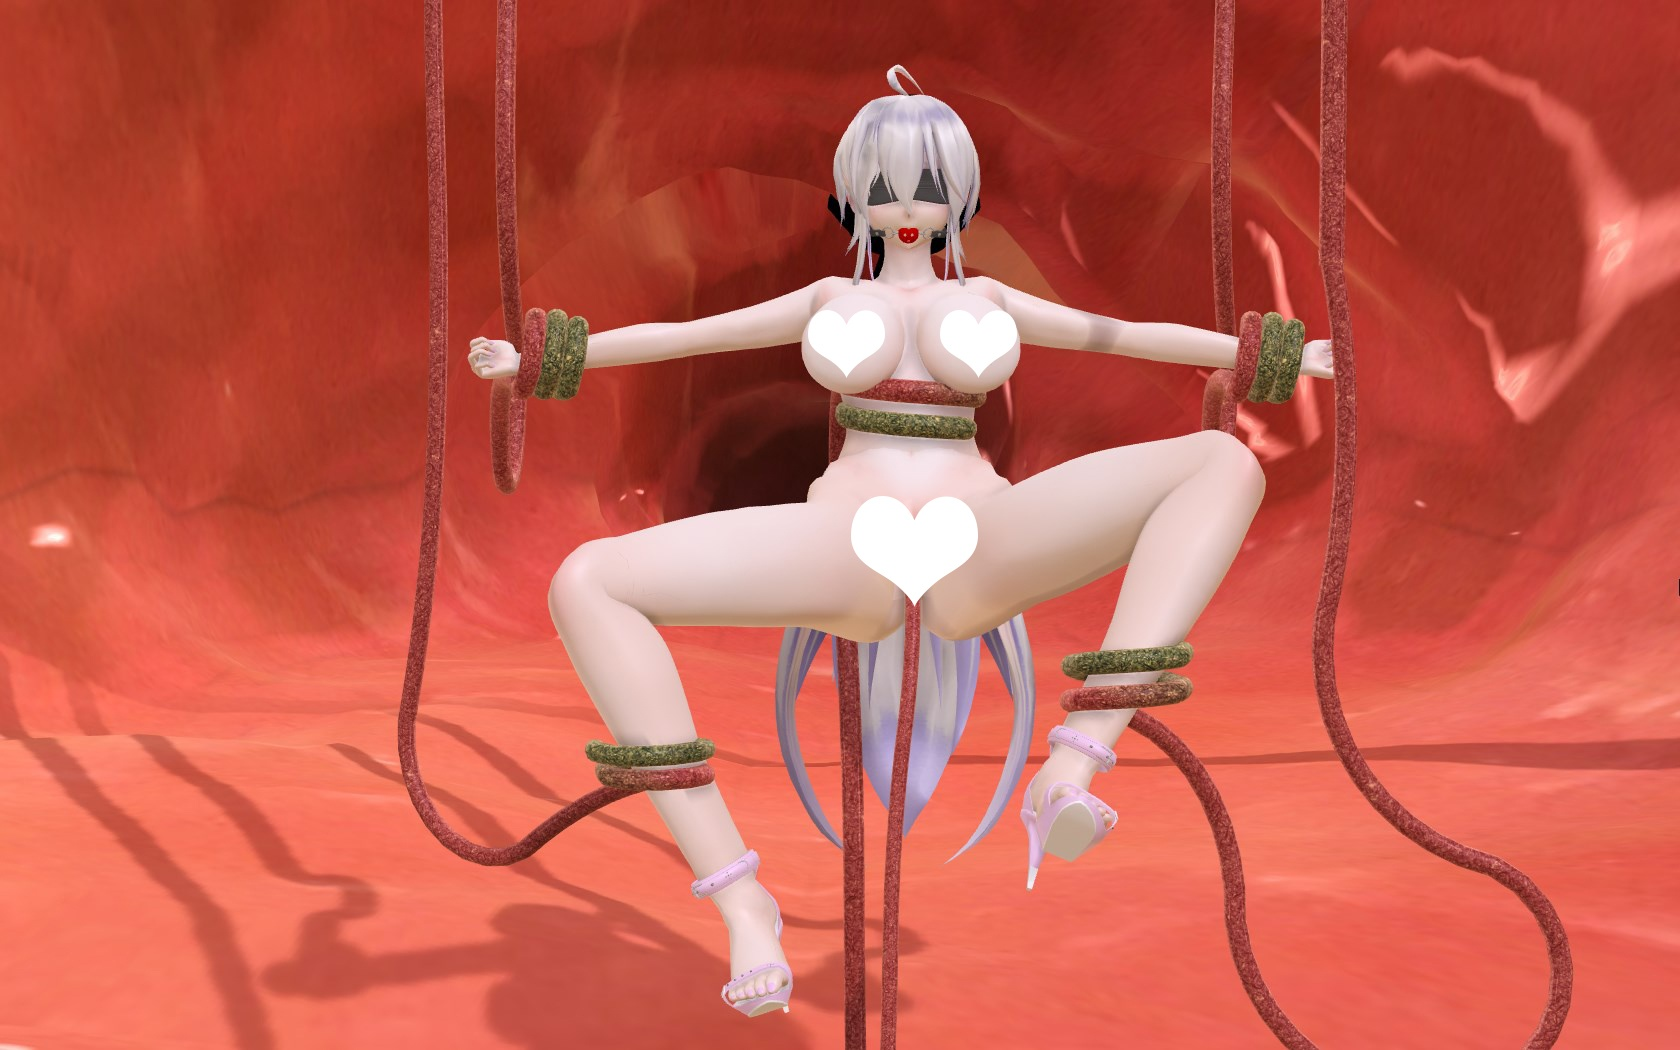 3D Character Porn will augmented reality (ar) porn be more realistic than